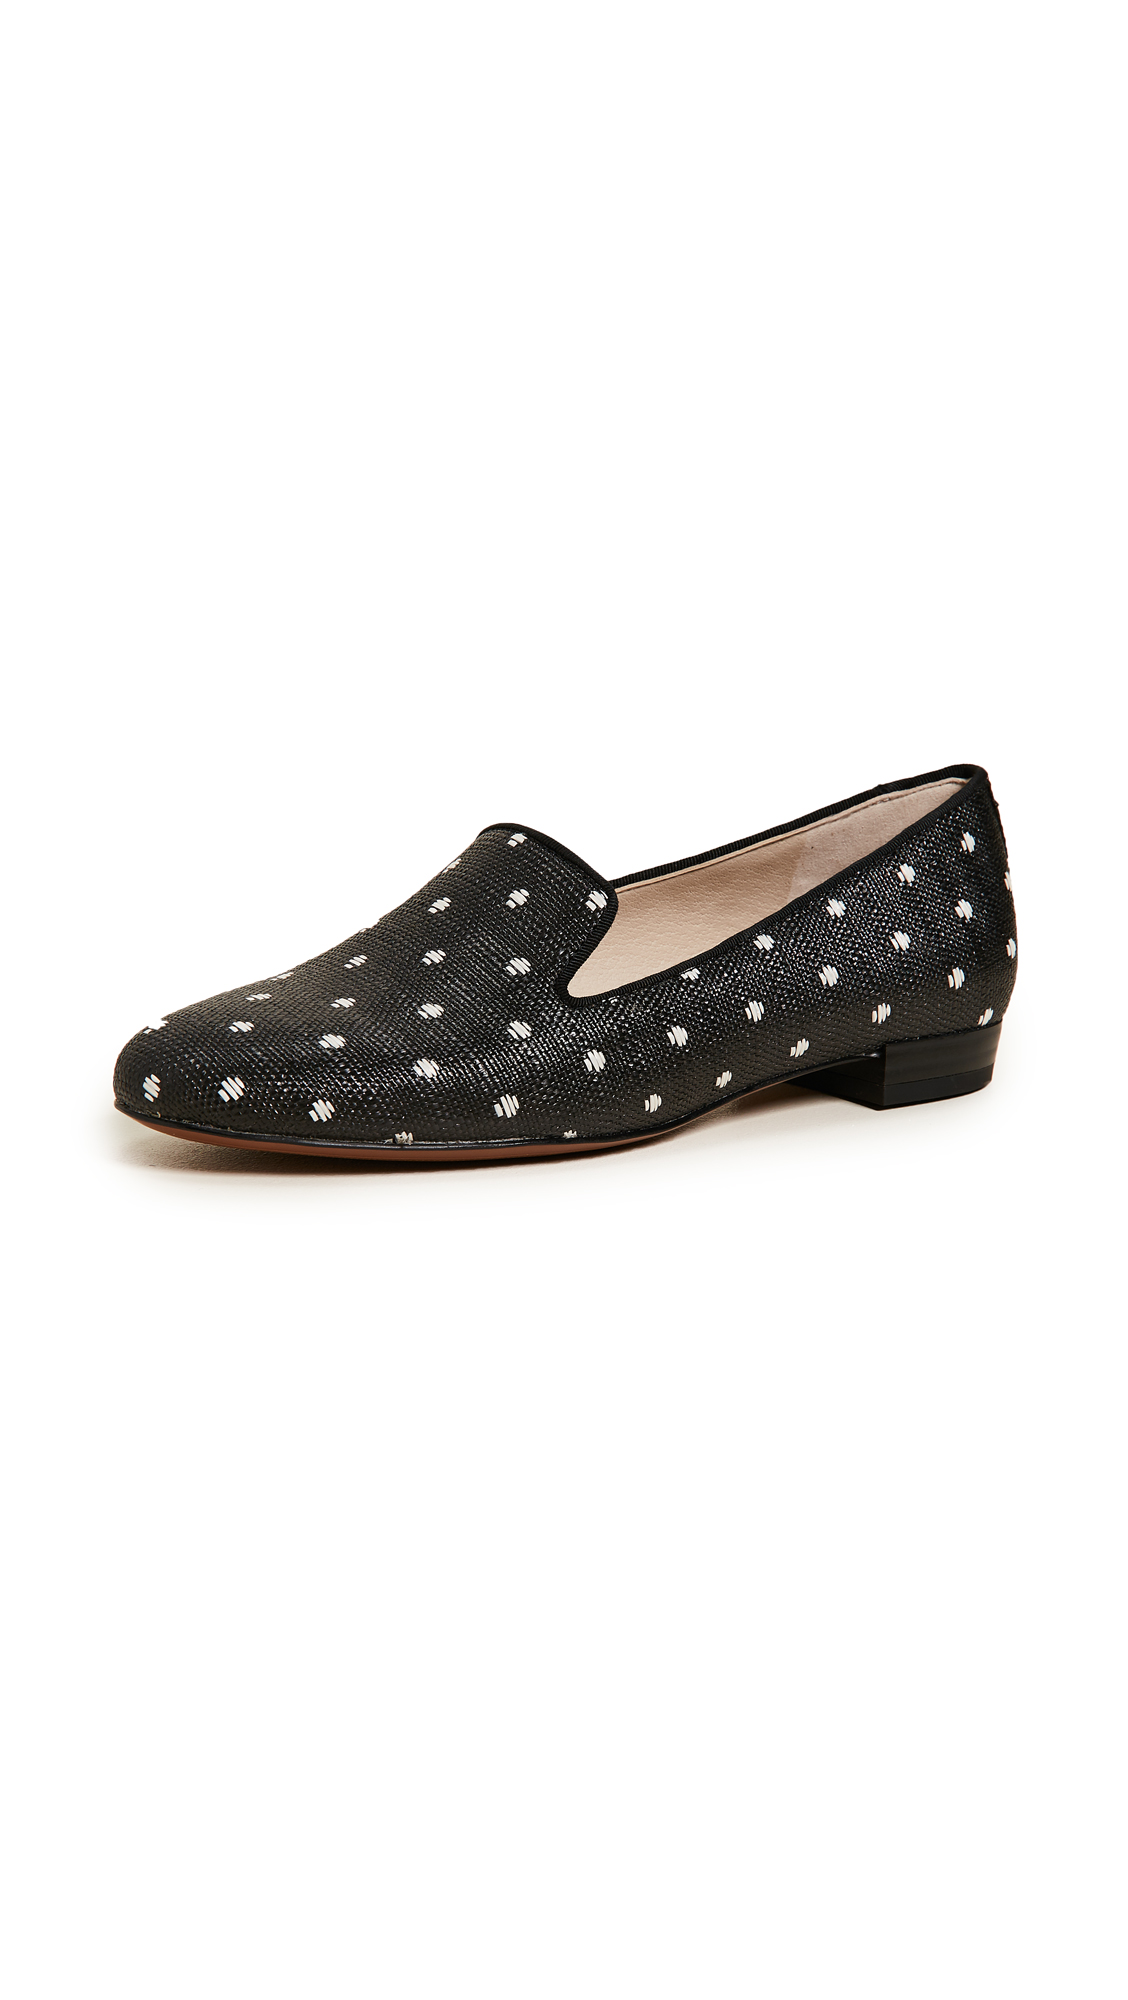 Sam Edelman Jordy Loafers - Black/White